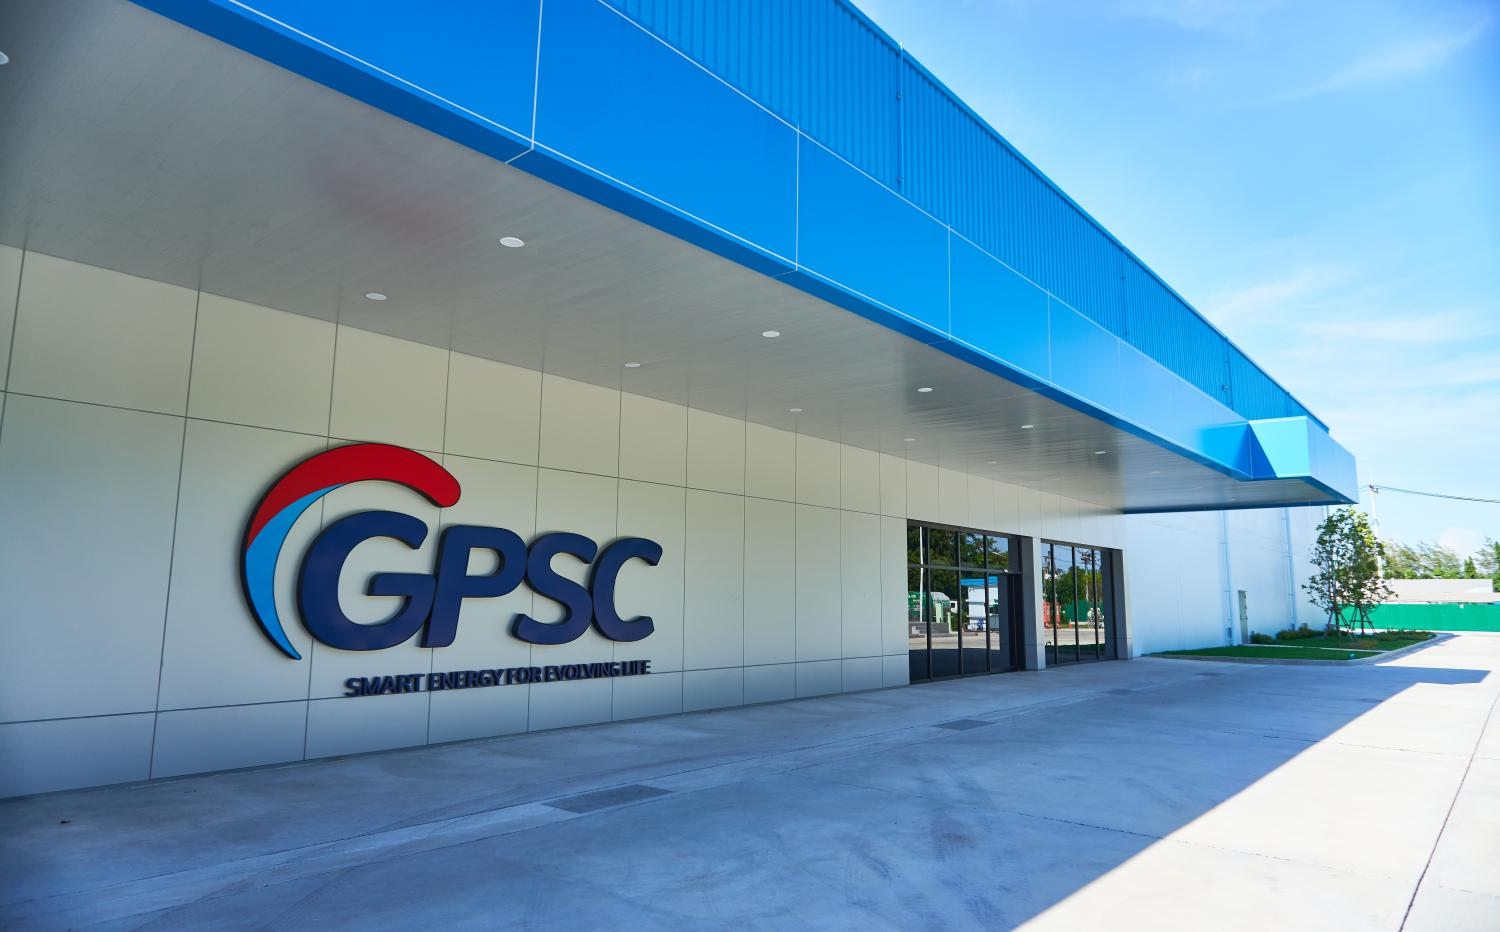 A battery production plant marks a significant step for GPSC to tap into the energy storage business.